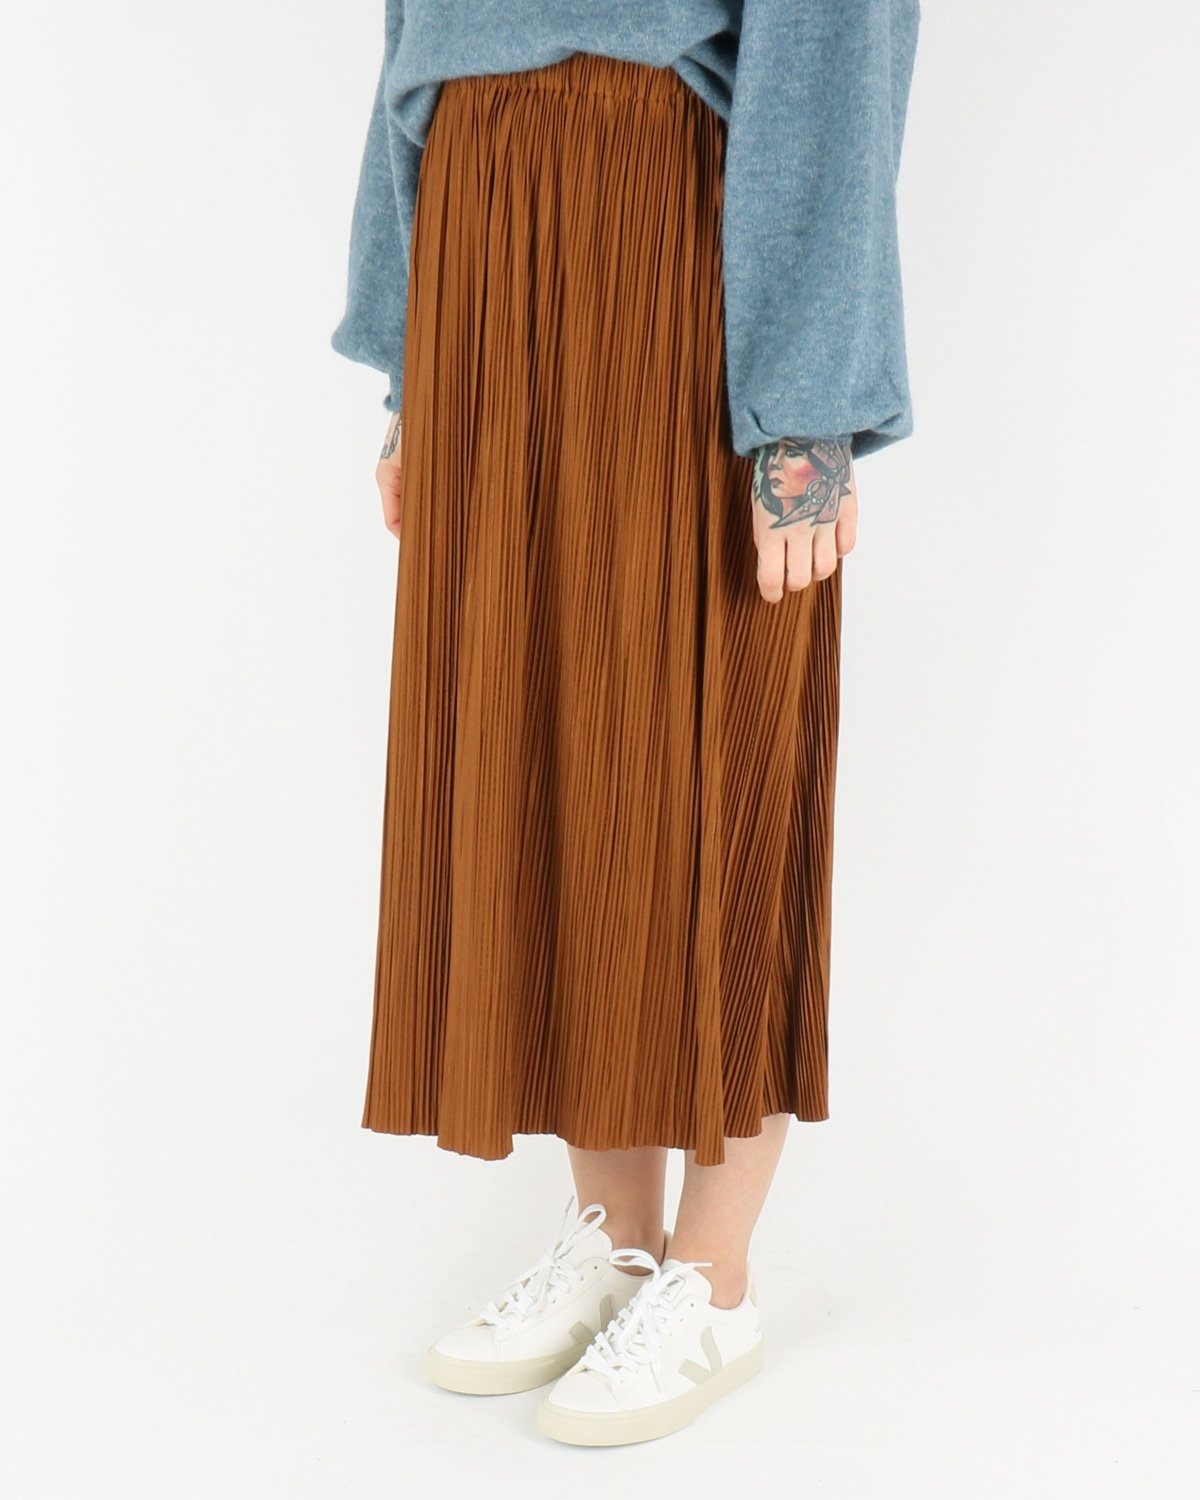 samsoe samsoe_uma skirt_monks robe_2_3